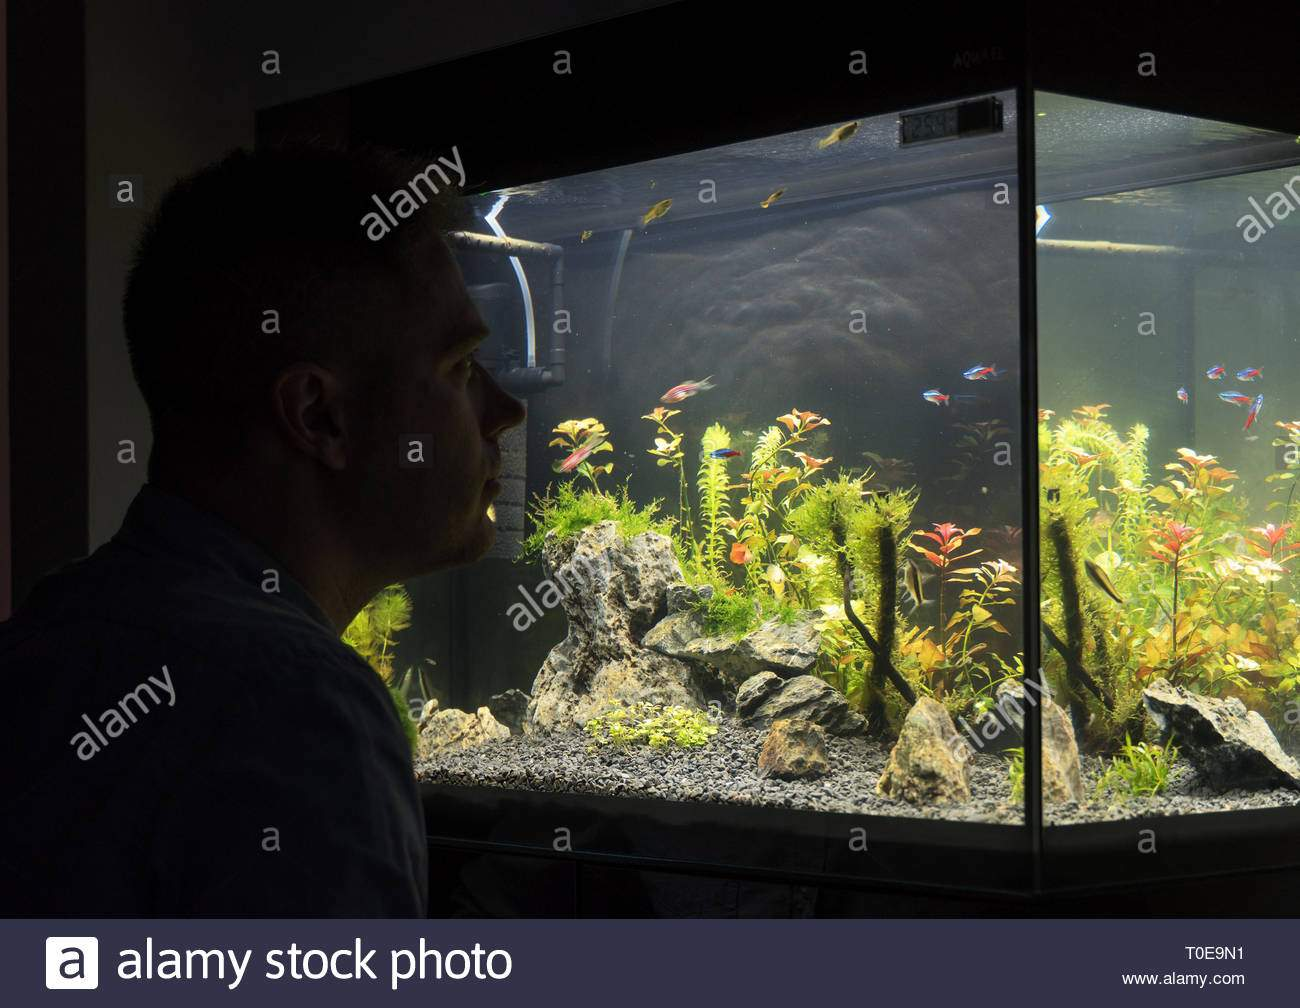 handsome man looks at the fish in the aquarium at home T0E9N1